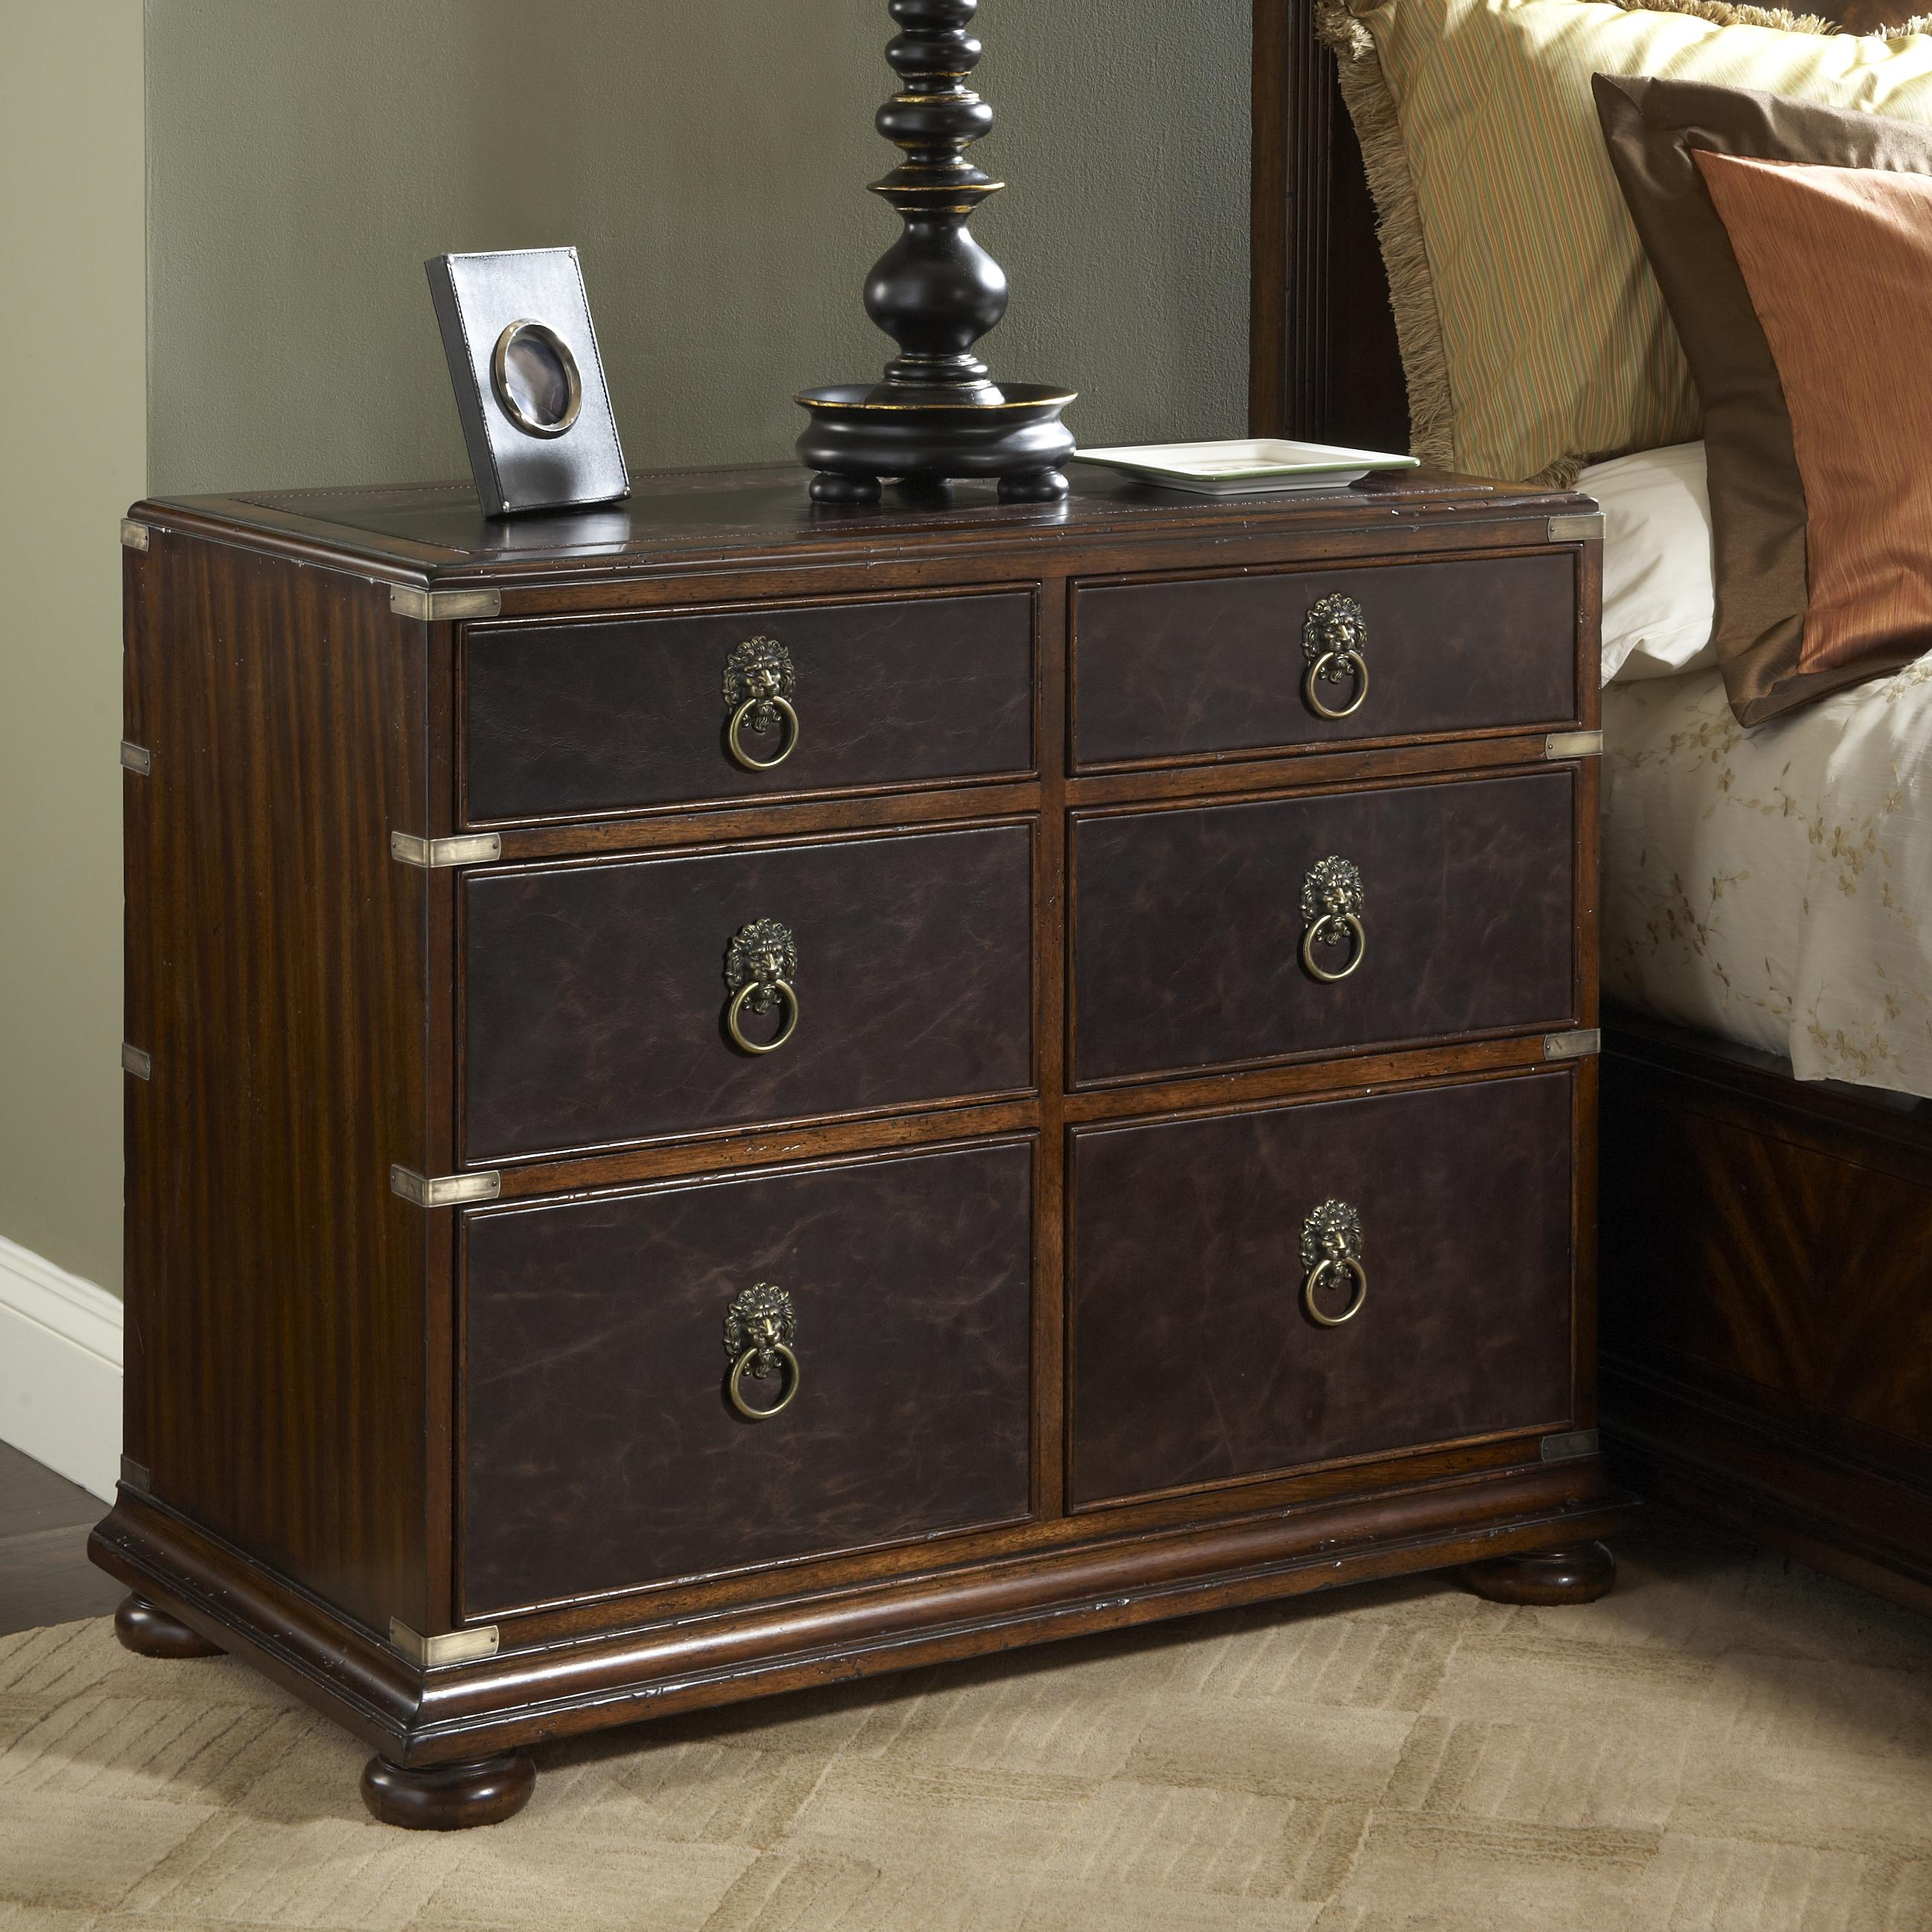 Bedside Chest Drawers Home Decoration